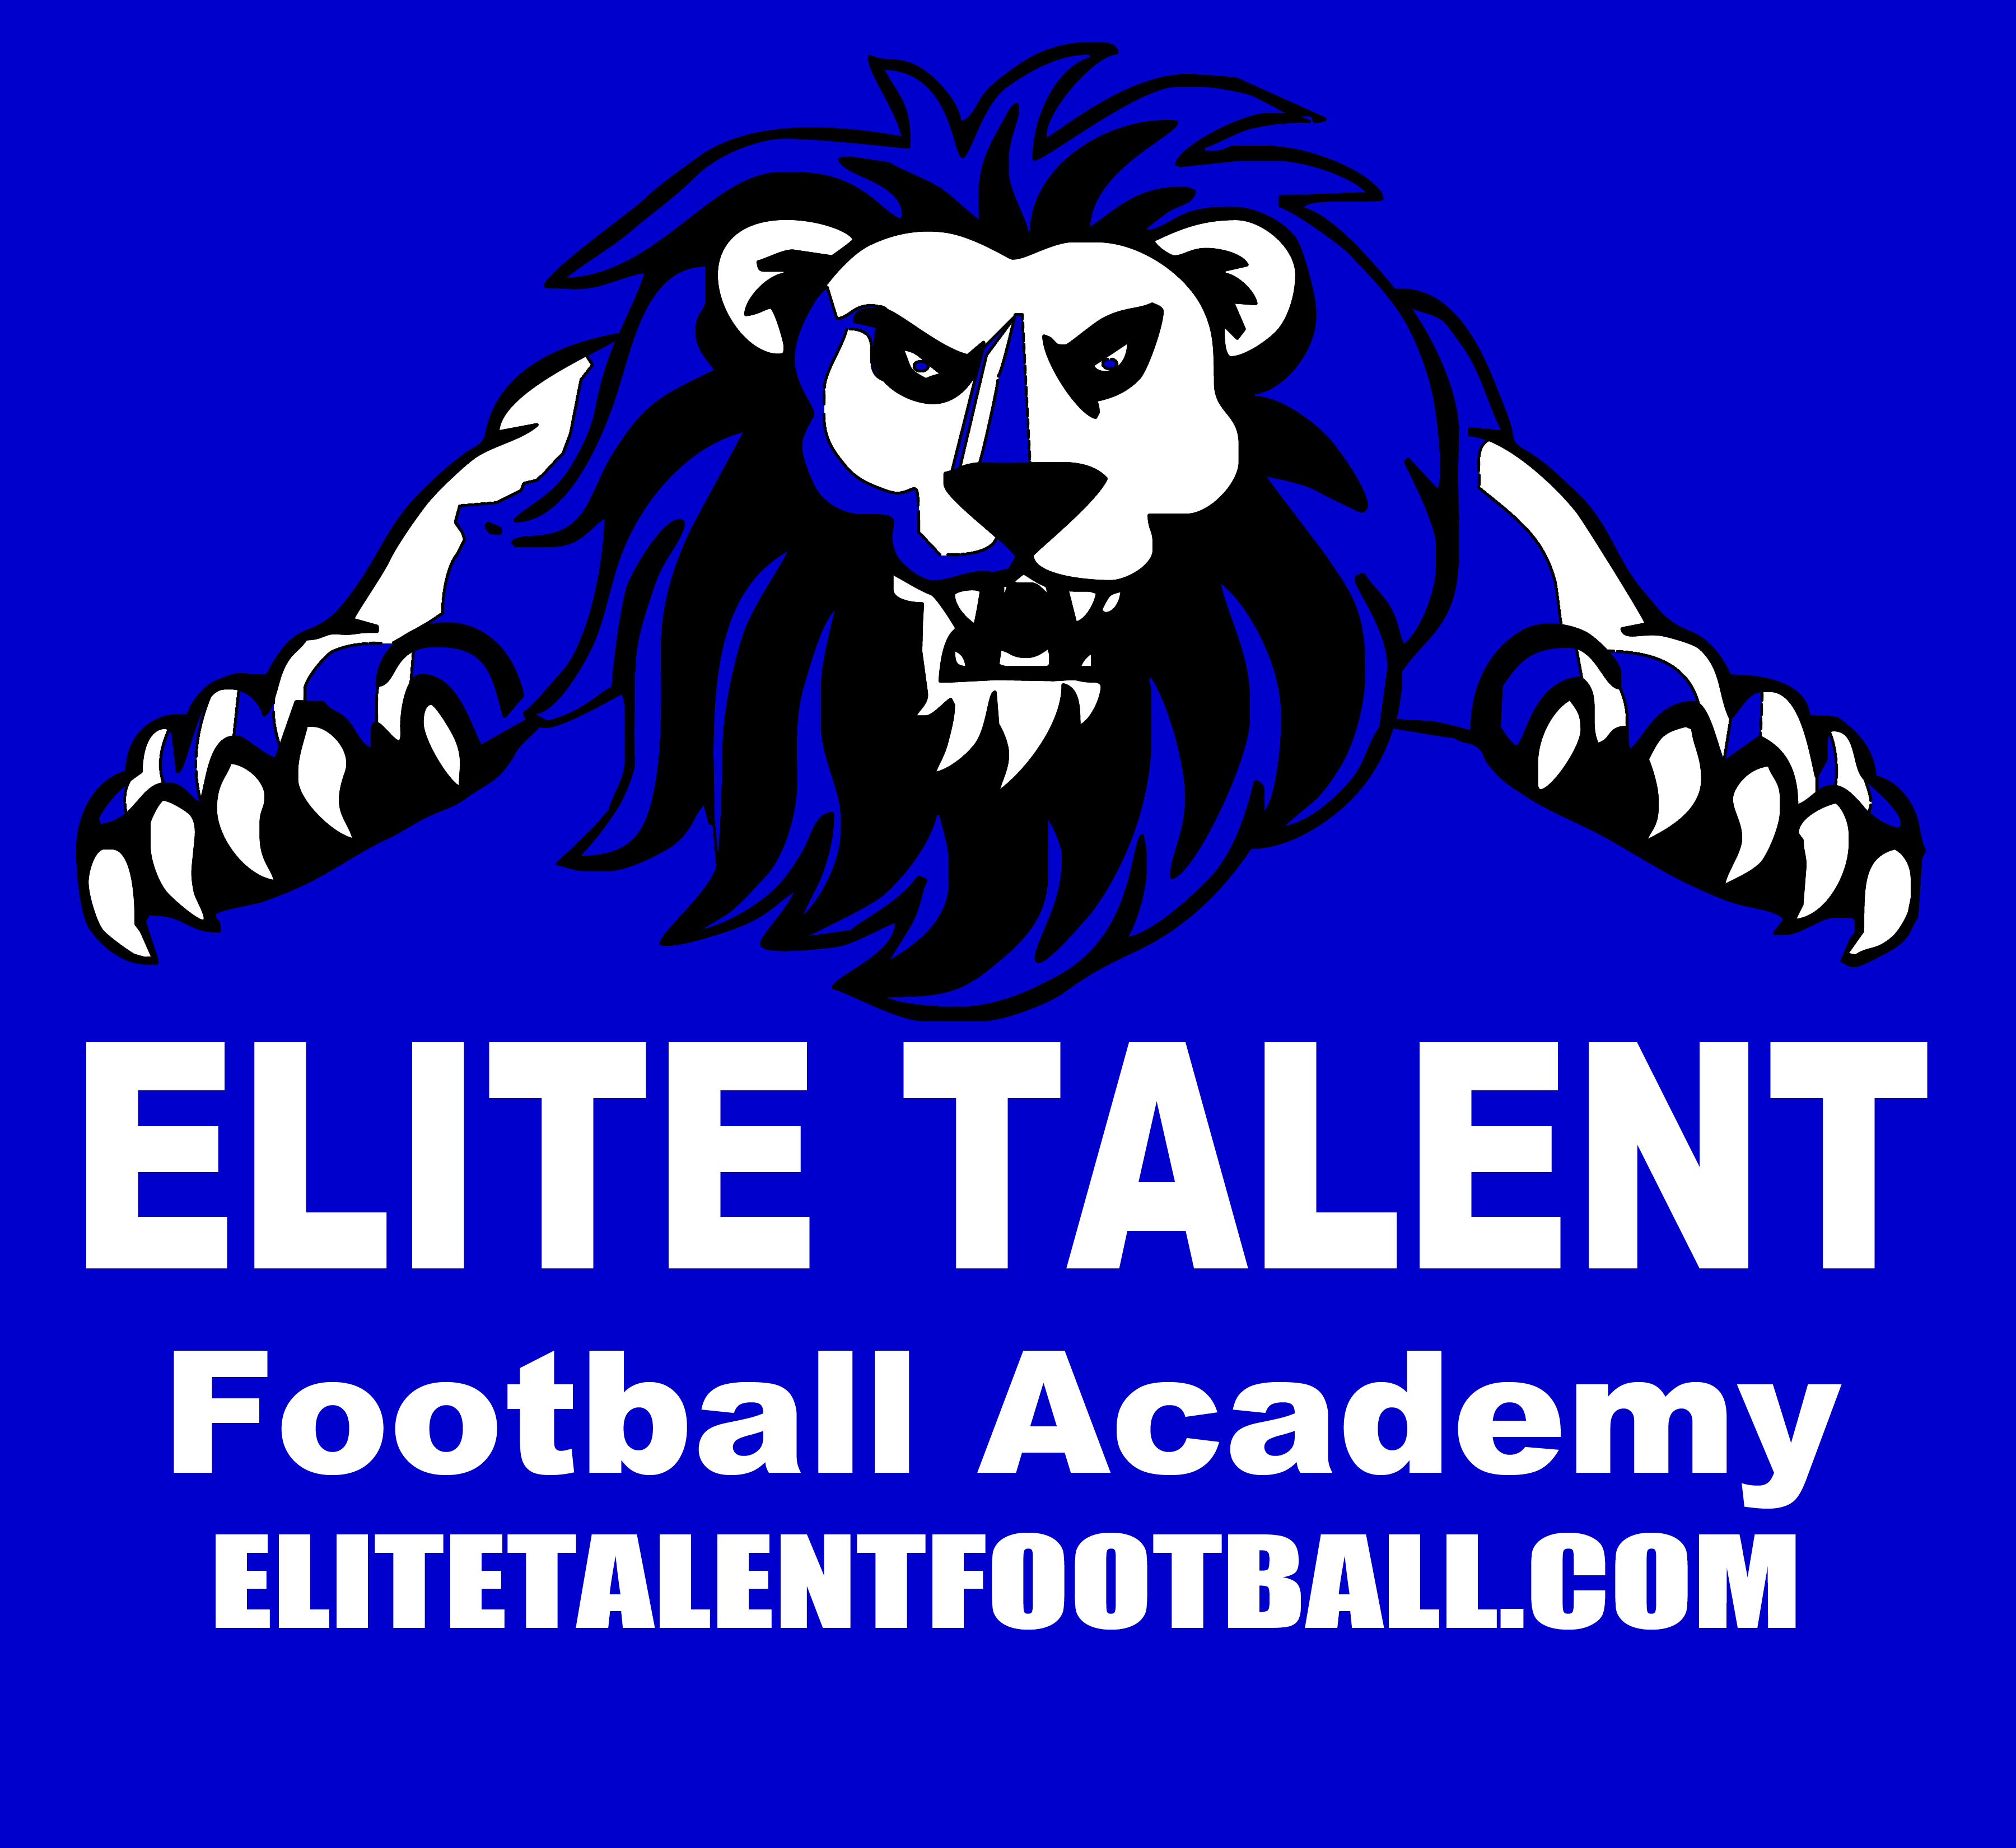 Elite Talent Football Academy Sponsors The Upcoming National College Evaluation Football Camp